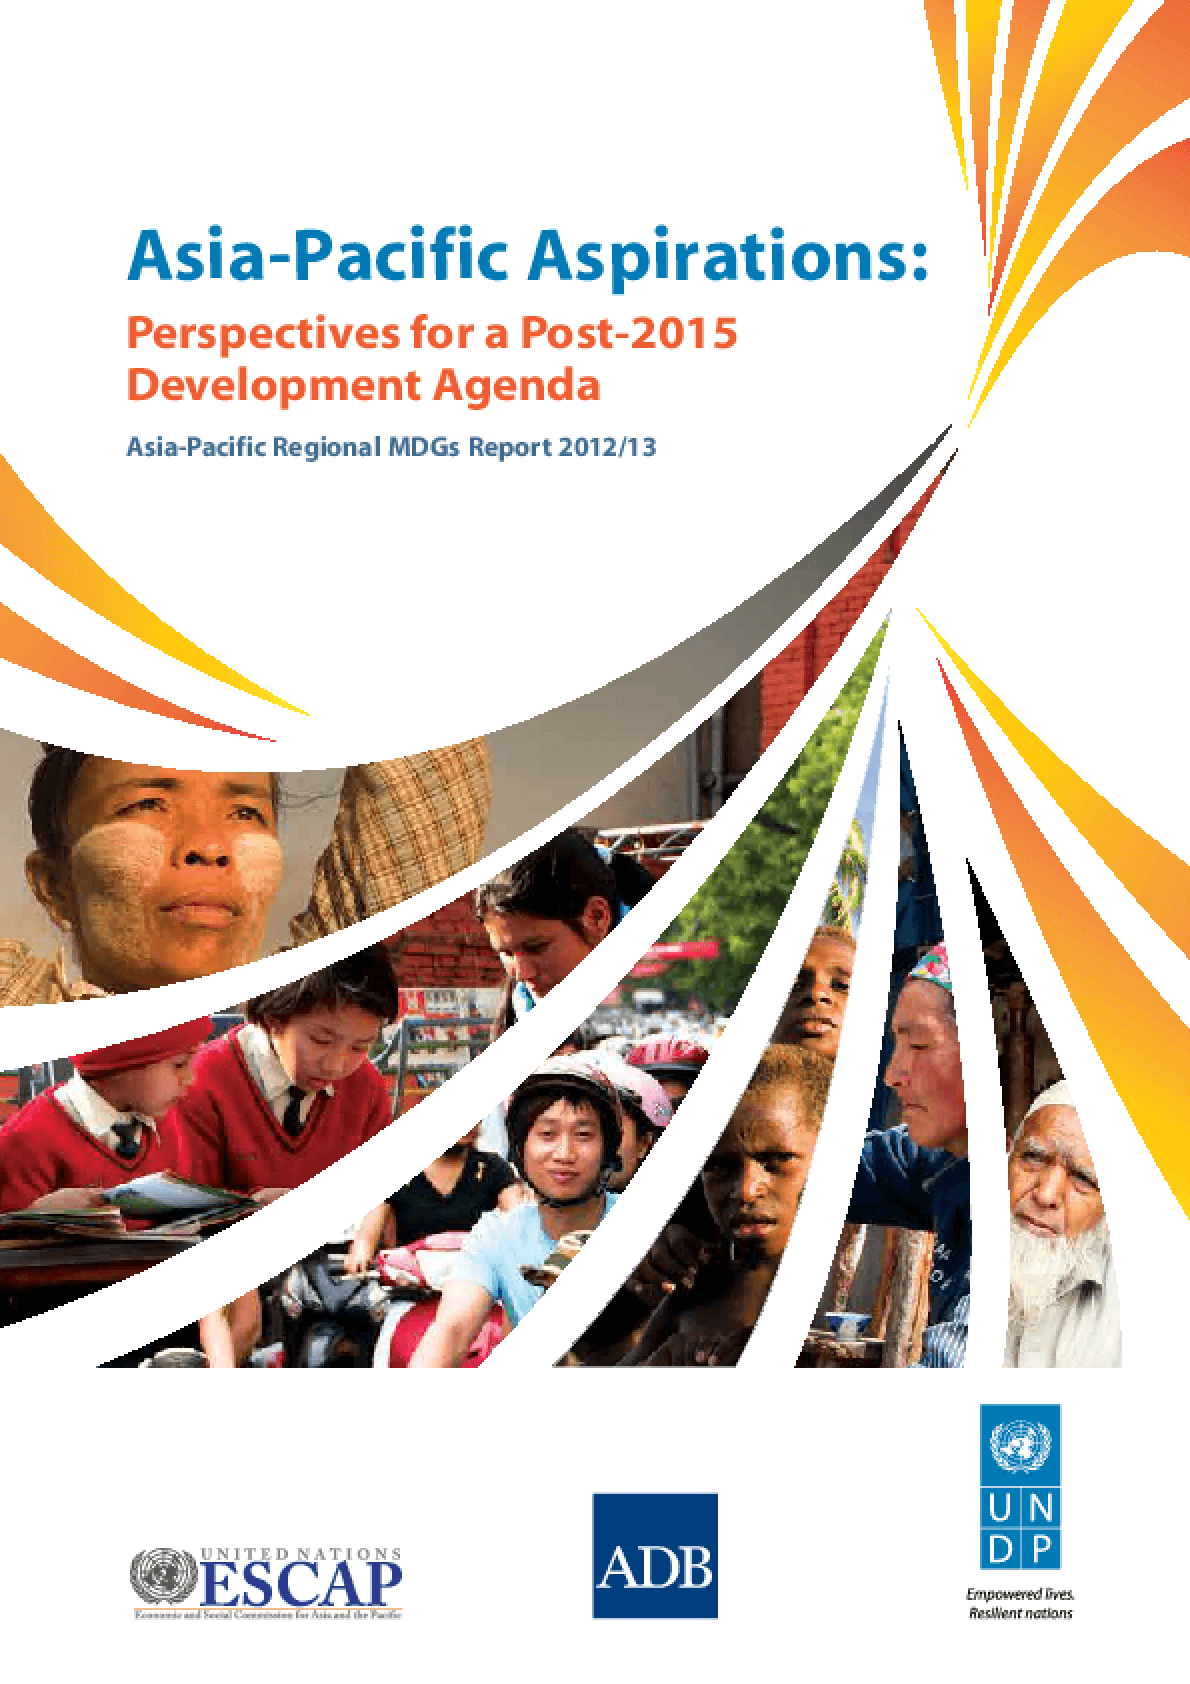 Asia-Pacific Aspirations: Perspectives for a Post-2015 Development Agenda, Asia-Pacific Regional MDGs Report 2012/13